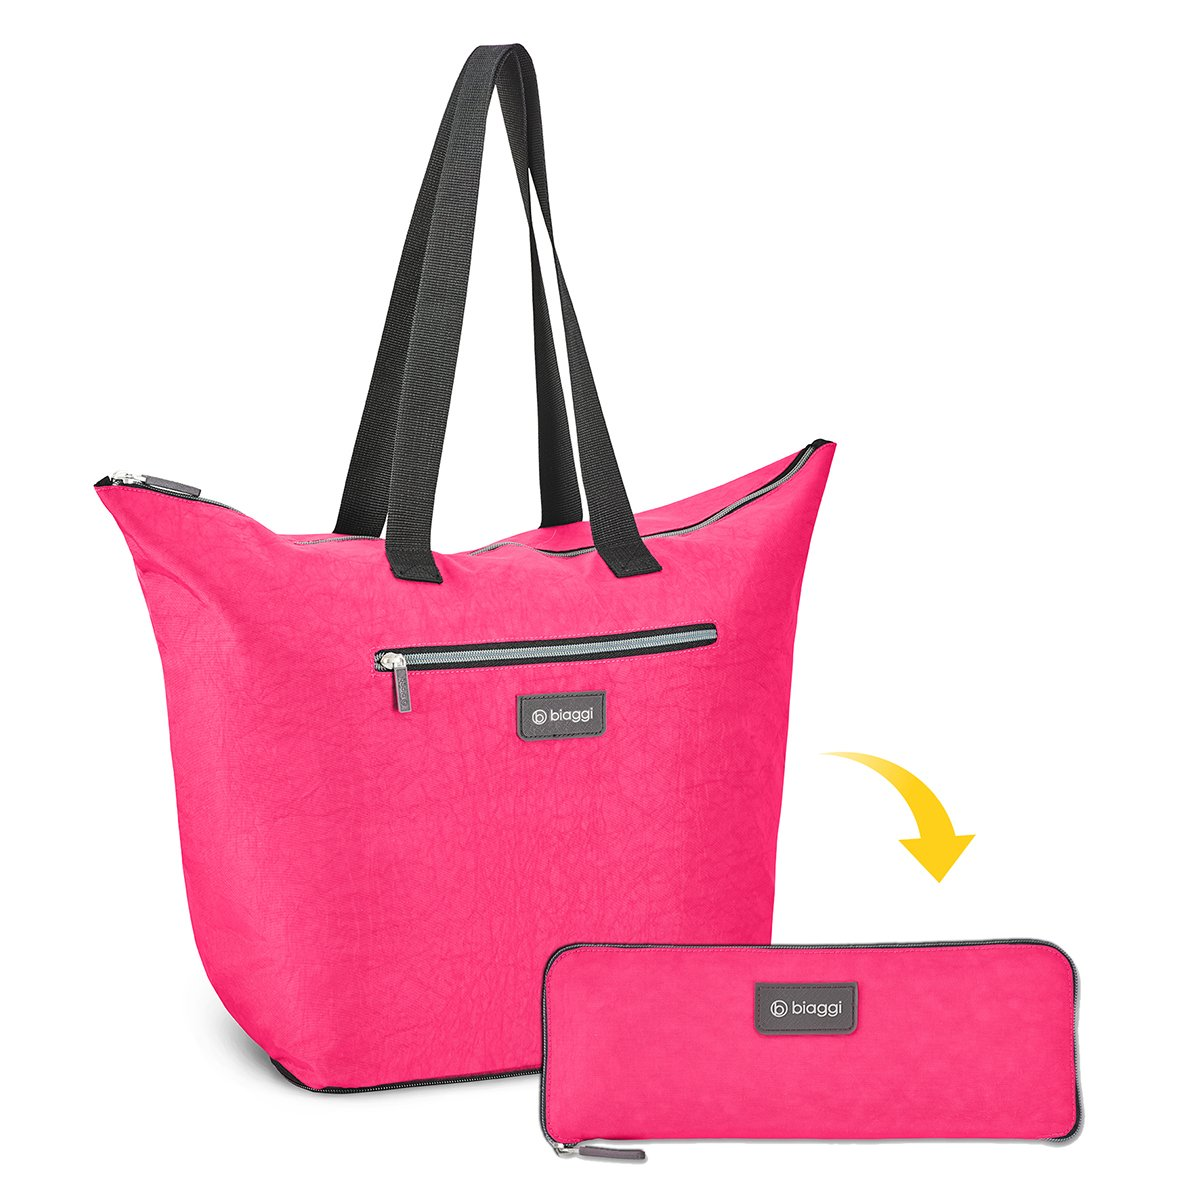 BIAGGI ZIP BAG COMES IN A WIDE VARIETY OF COLORS